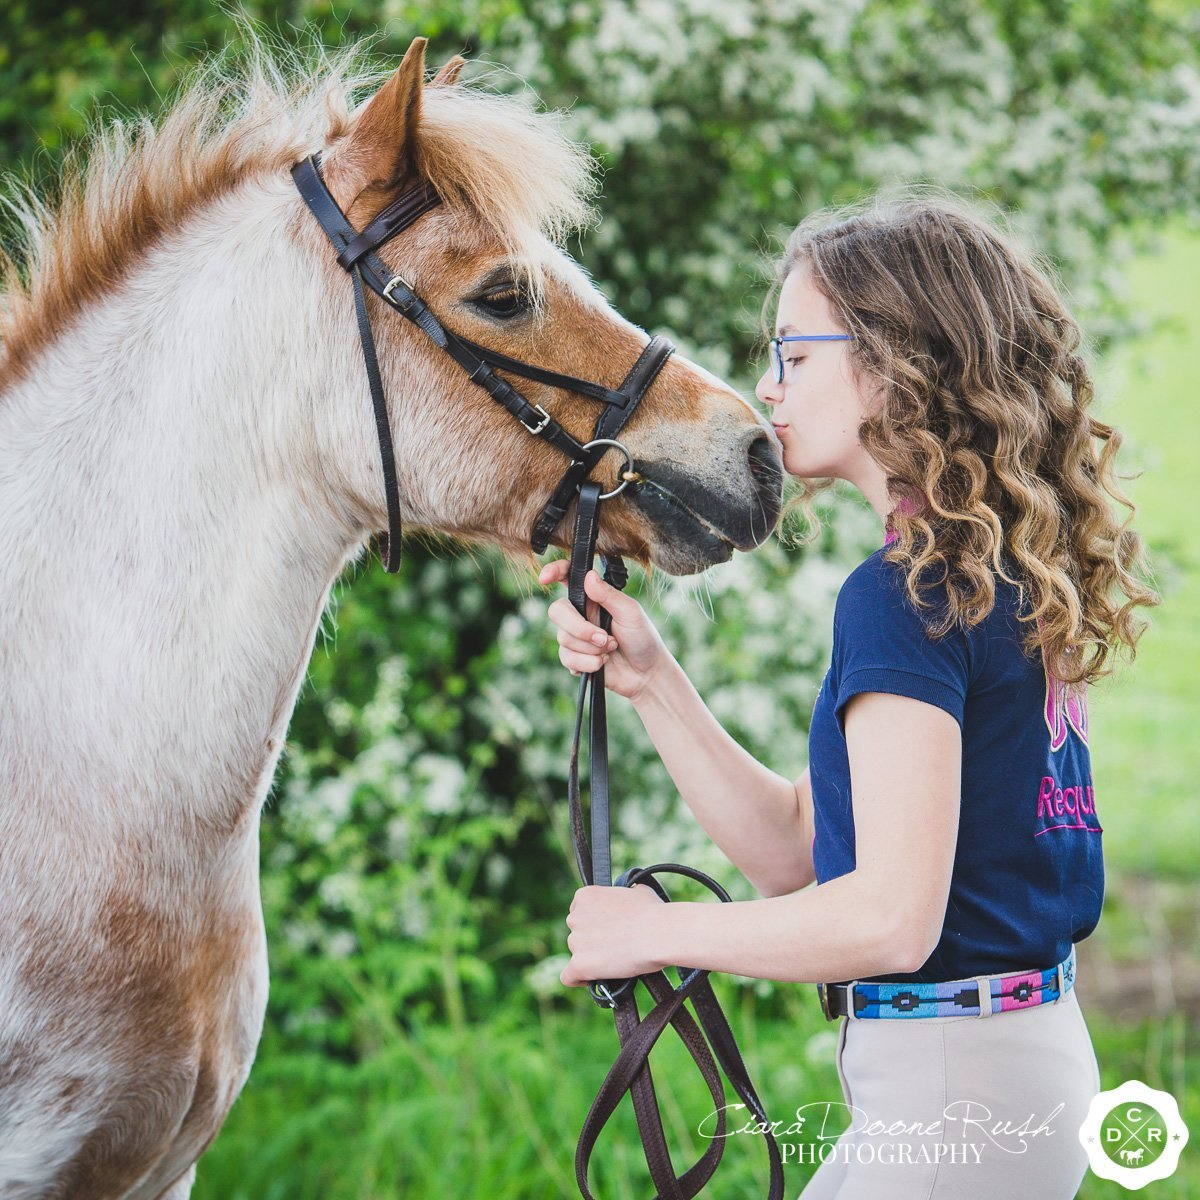 A pony and rider photo shoot in Cheshire